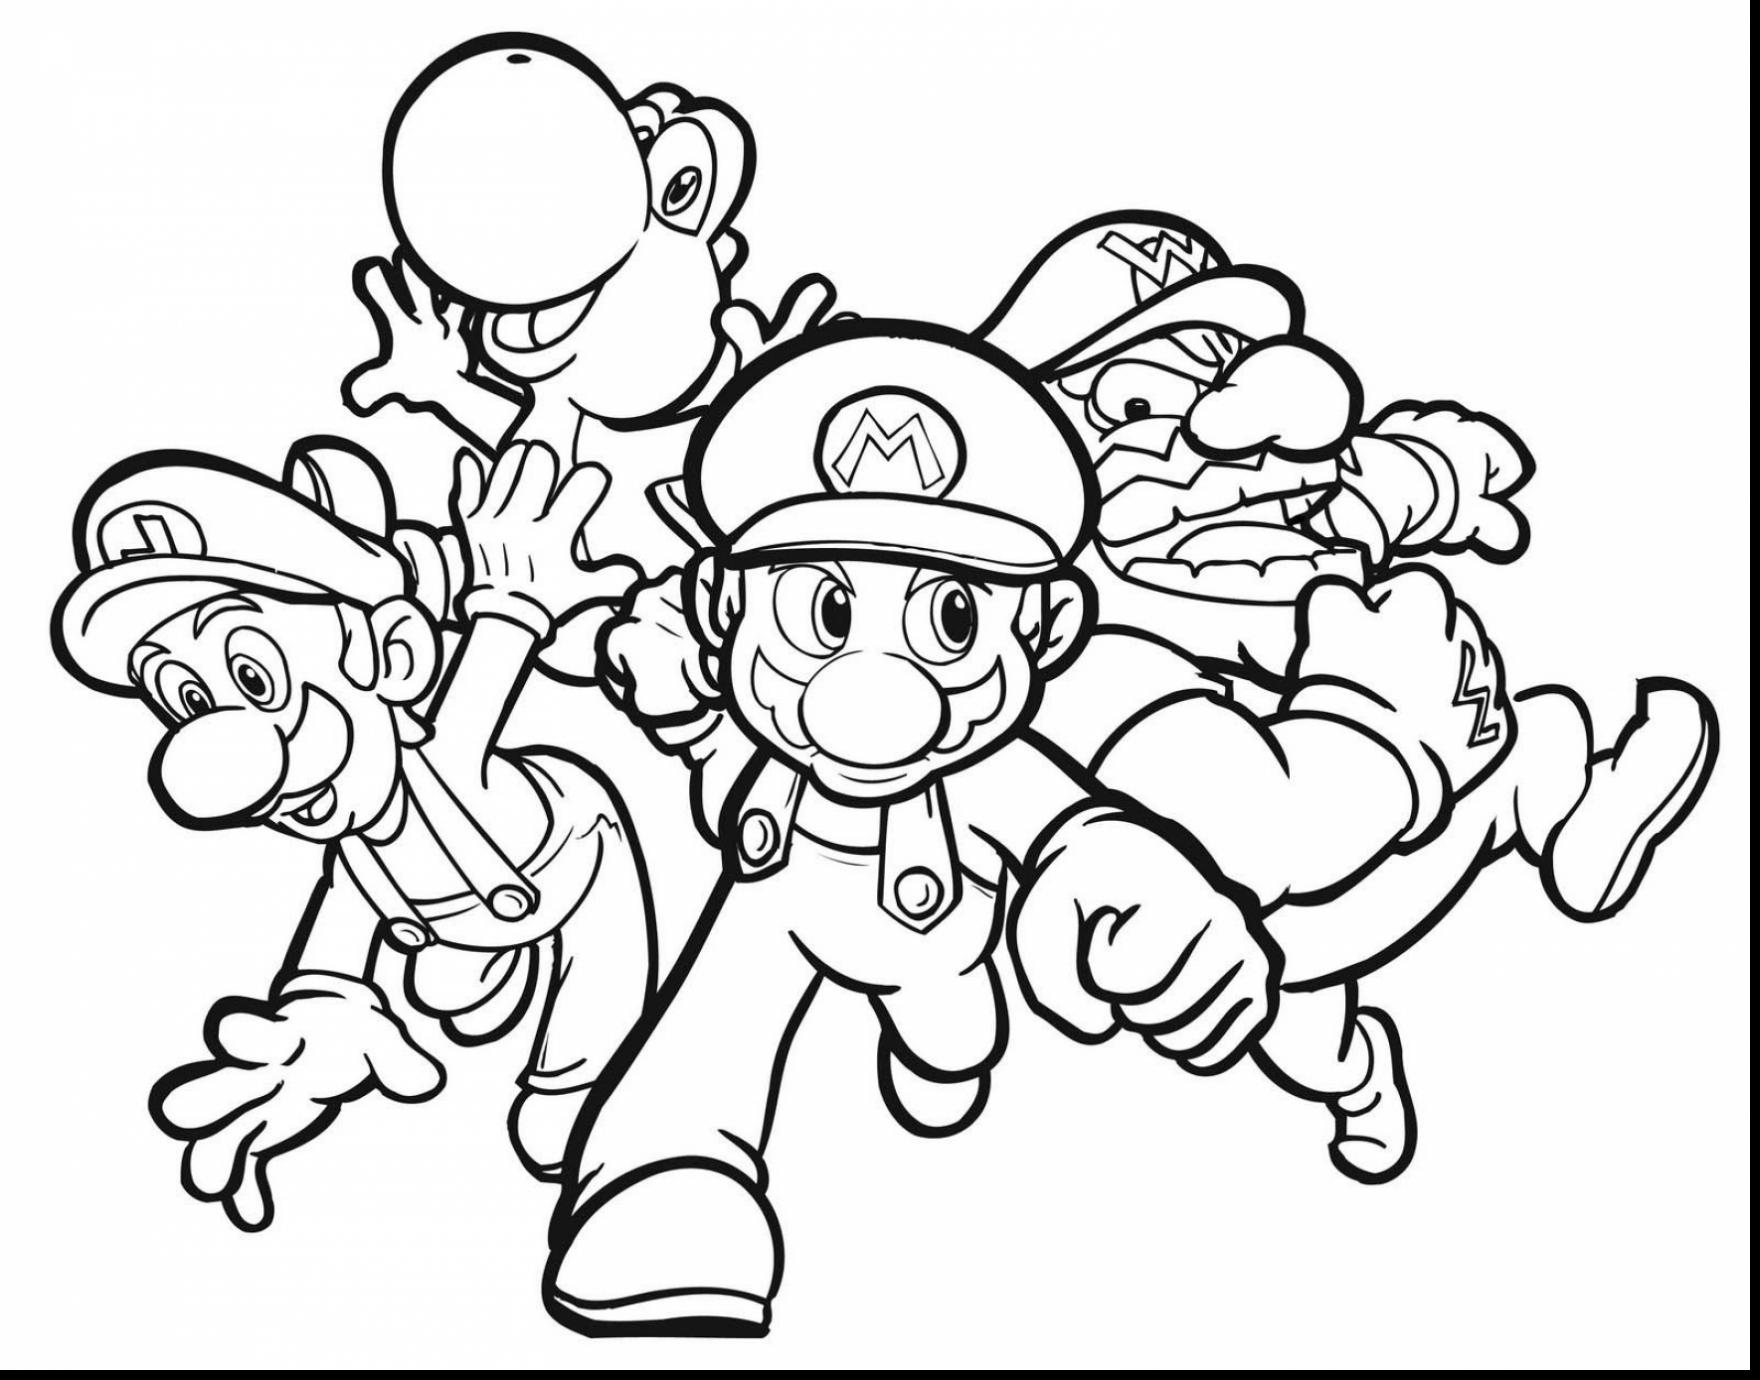 super mario galaxy colouring pages mario galaxy coloring pages at getdrawings free download mario super galaxy pages colouring